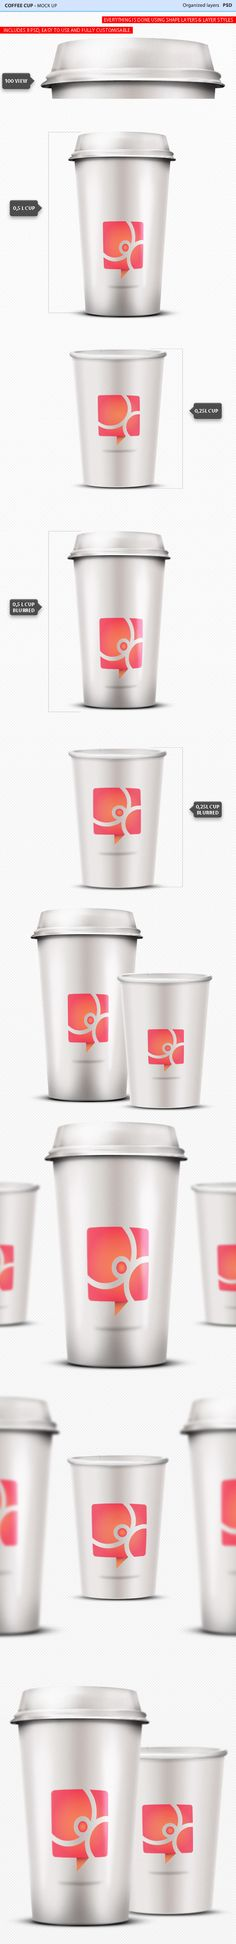 INFO The pack includes 8 amazing Coffee Cup Mock Ups for you to use. Everything is fully customisable and easy to use. It offers a highend effect on your lable design, but it also can be used to display logos and other designs. All you have to do is change the image inside the REPLACE ME ! smart object and you are done. For more informations please contact me at nechitapaulflavius@gmail.com Thanks for purchasing and don't forget to rate!